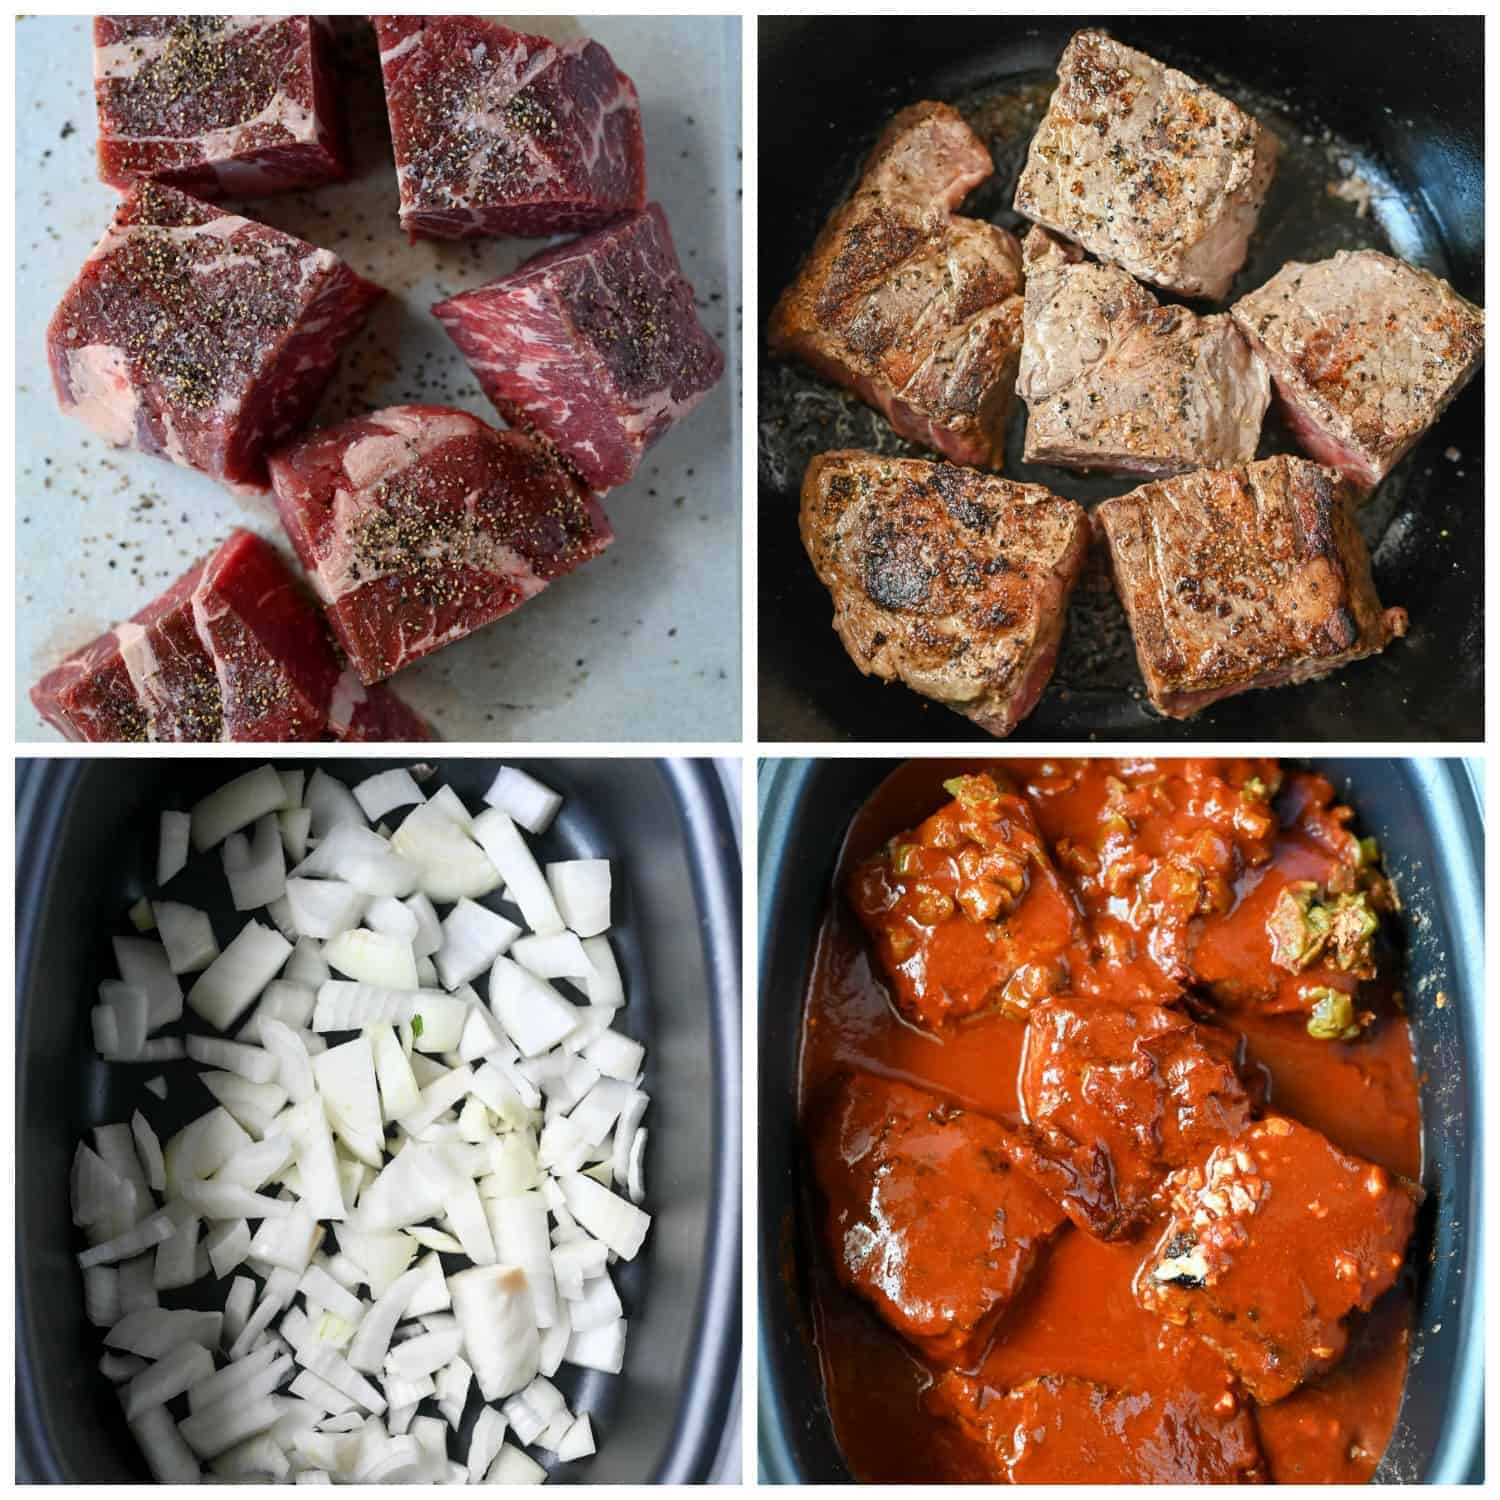 Four process shots. First one, chunks of meat on a cutting board with salt and pepper on top. Second one, beef chunks browned in a large cast iron pot. Third one, chopped onions in the bottom of the slow cooker. Fourth one, the browned meat chunks, chipotle, garlic, beef boullin, taco seasoning and enchilada sauce poured on top.